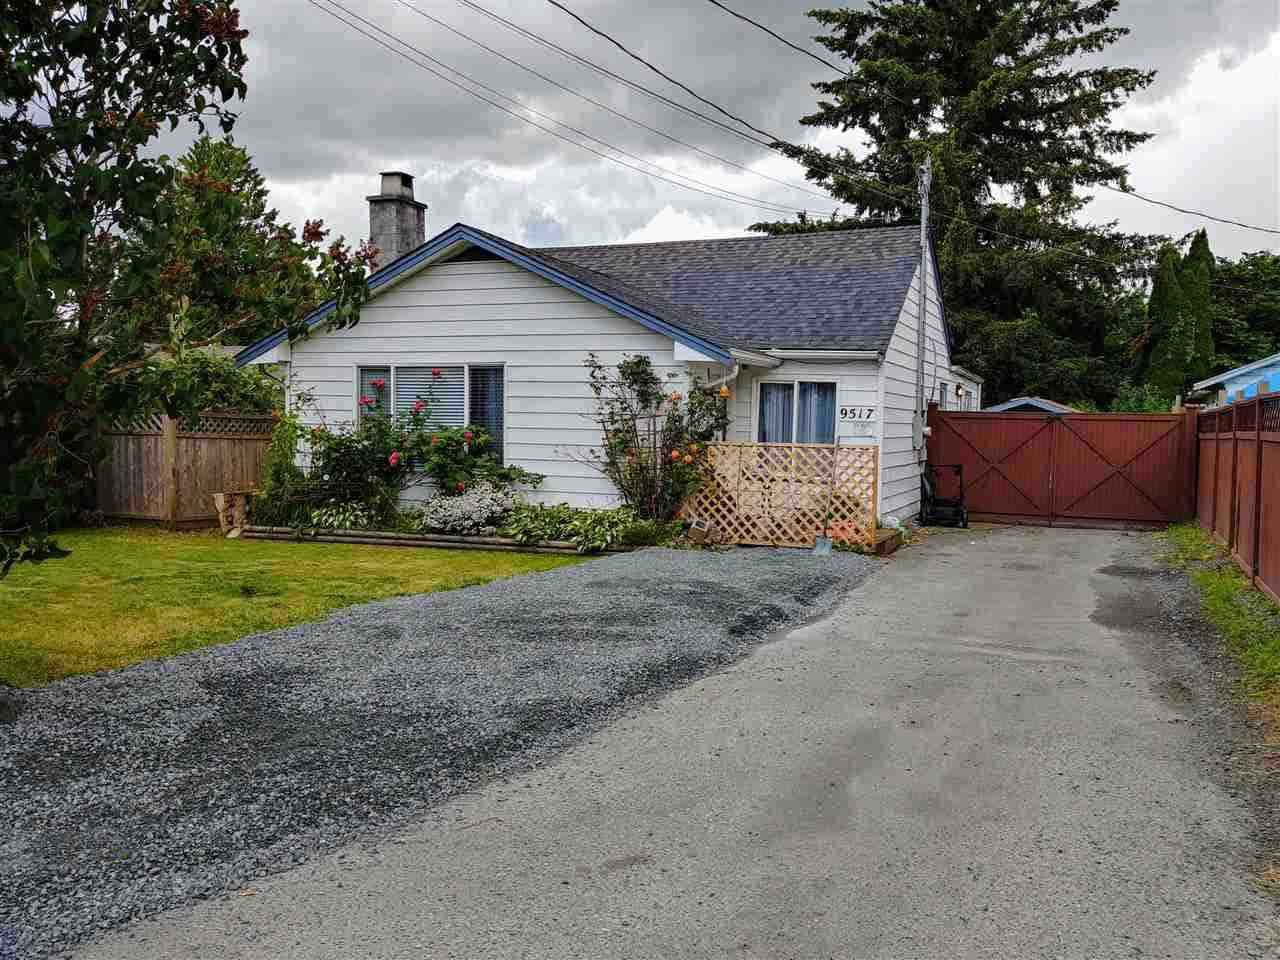 Main Photo: 9517 STANLEY Street in Chilliwack: Chilliwack N Yale-Well House for sale : MLS®# R2283534